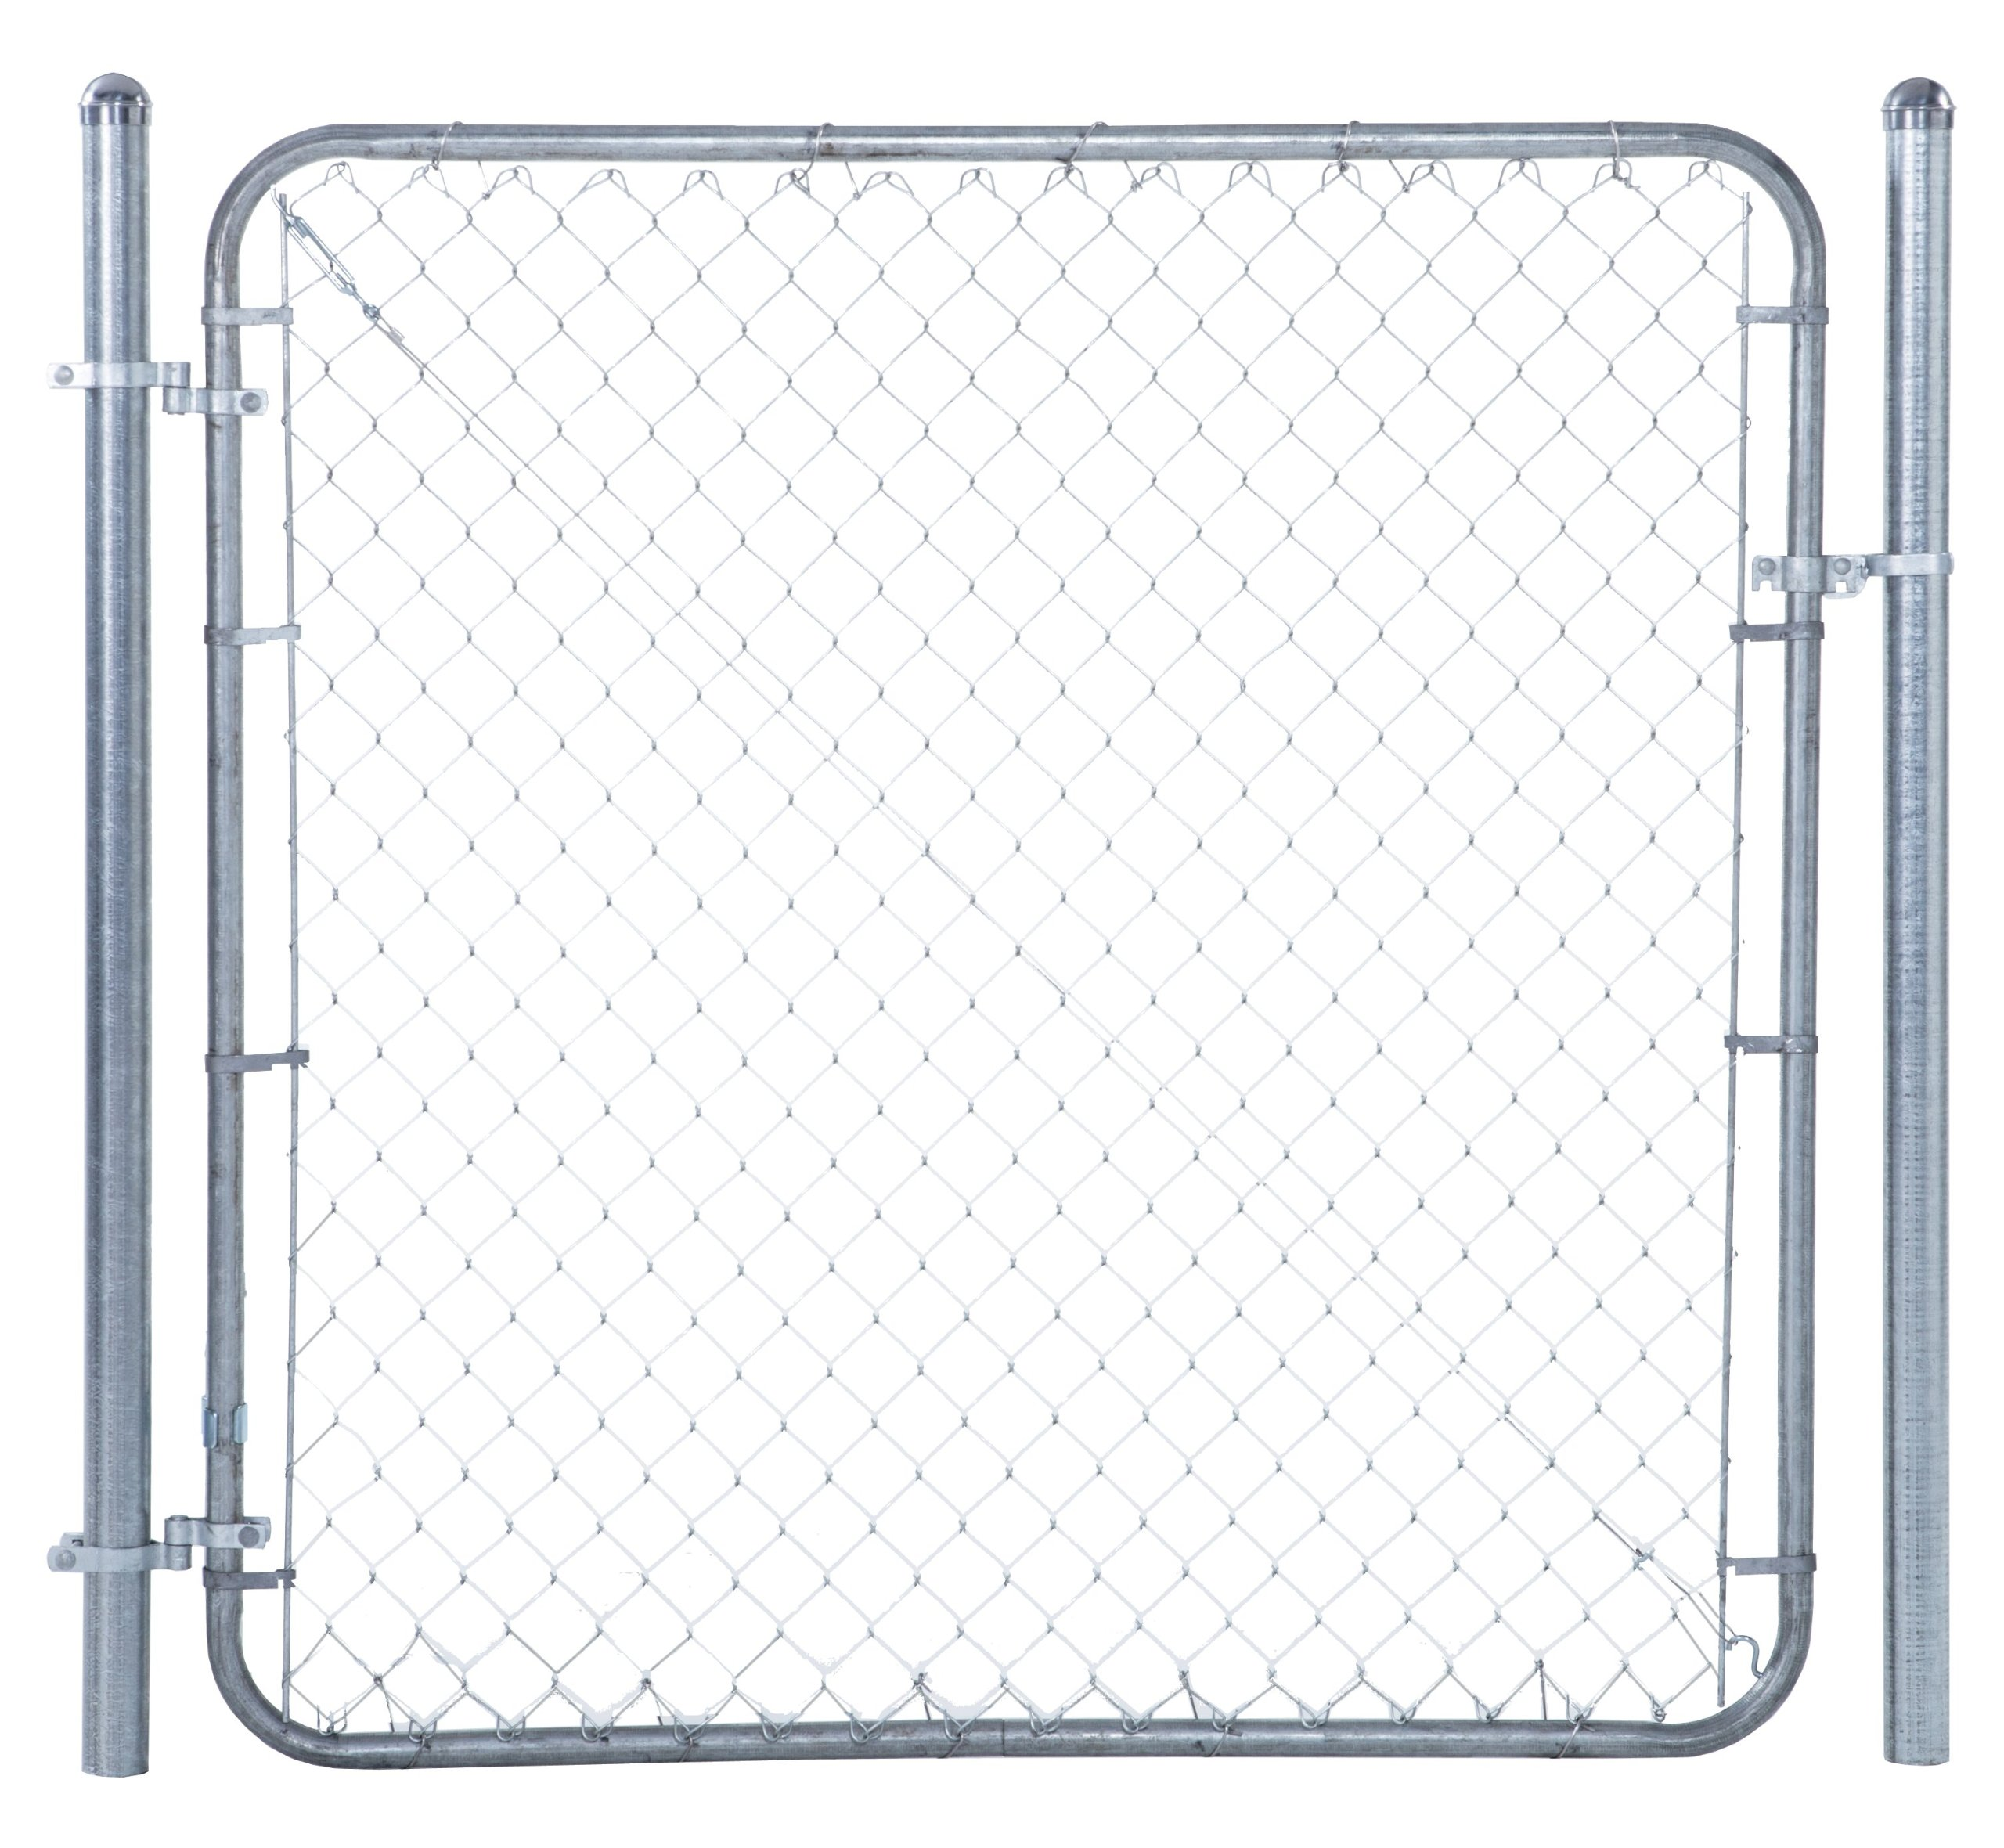 Chain Link Fence Walk-through Gate Kit - Adjust-A-Gate Chain Link Gate Building Kit - This fence gate kit is perfect for replacing existing sagging gates or building new ones. (24''-72'' wide x 4' high) by Adjust-A-Gate